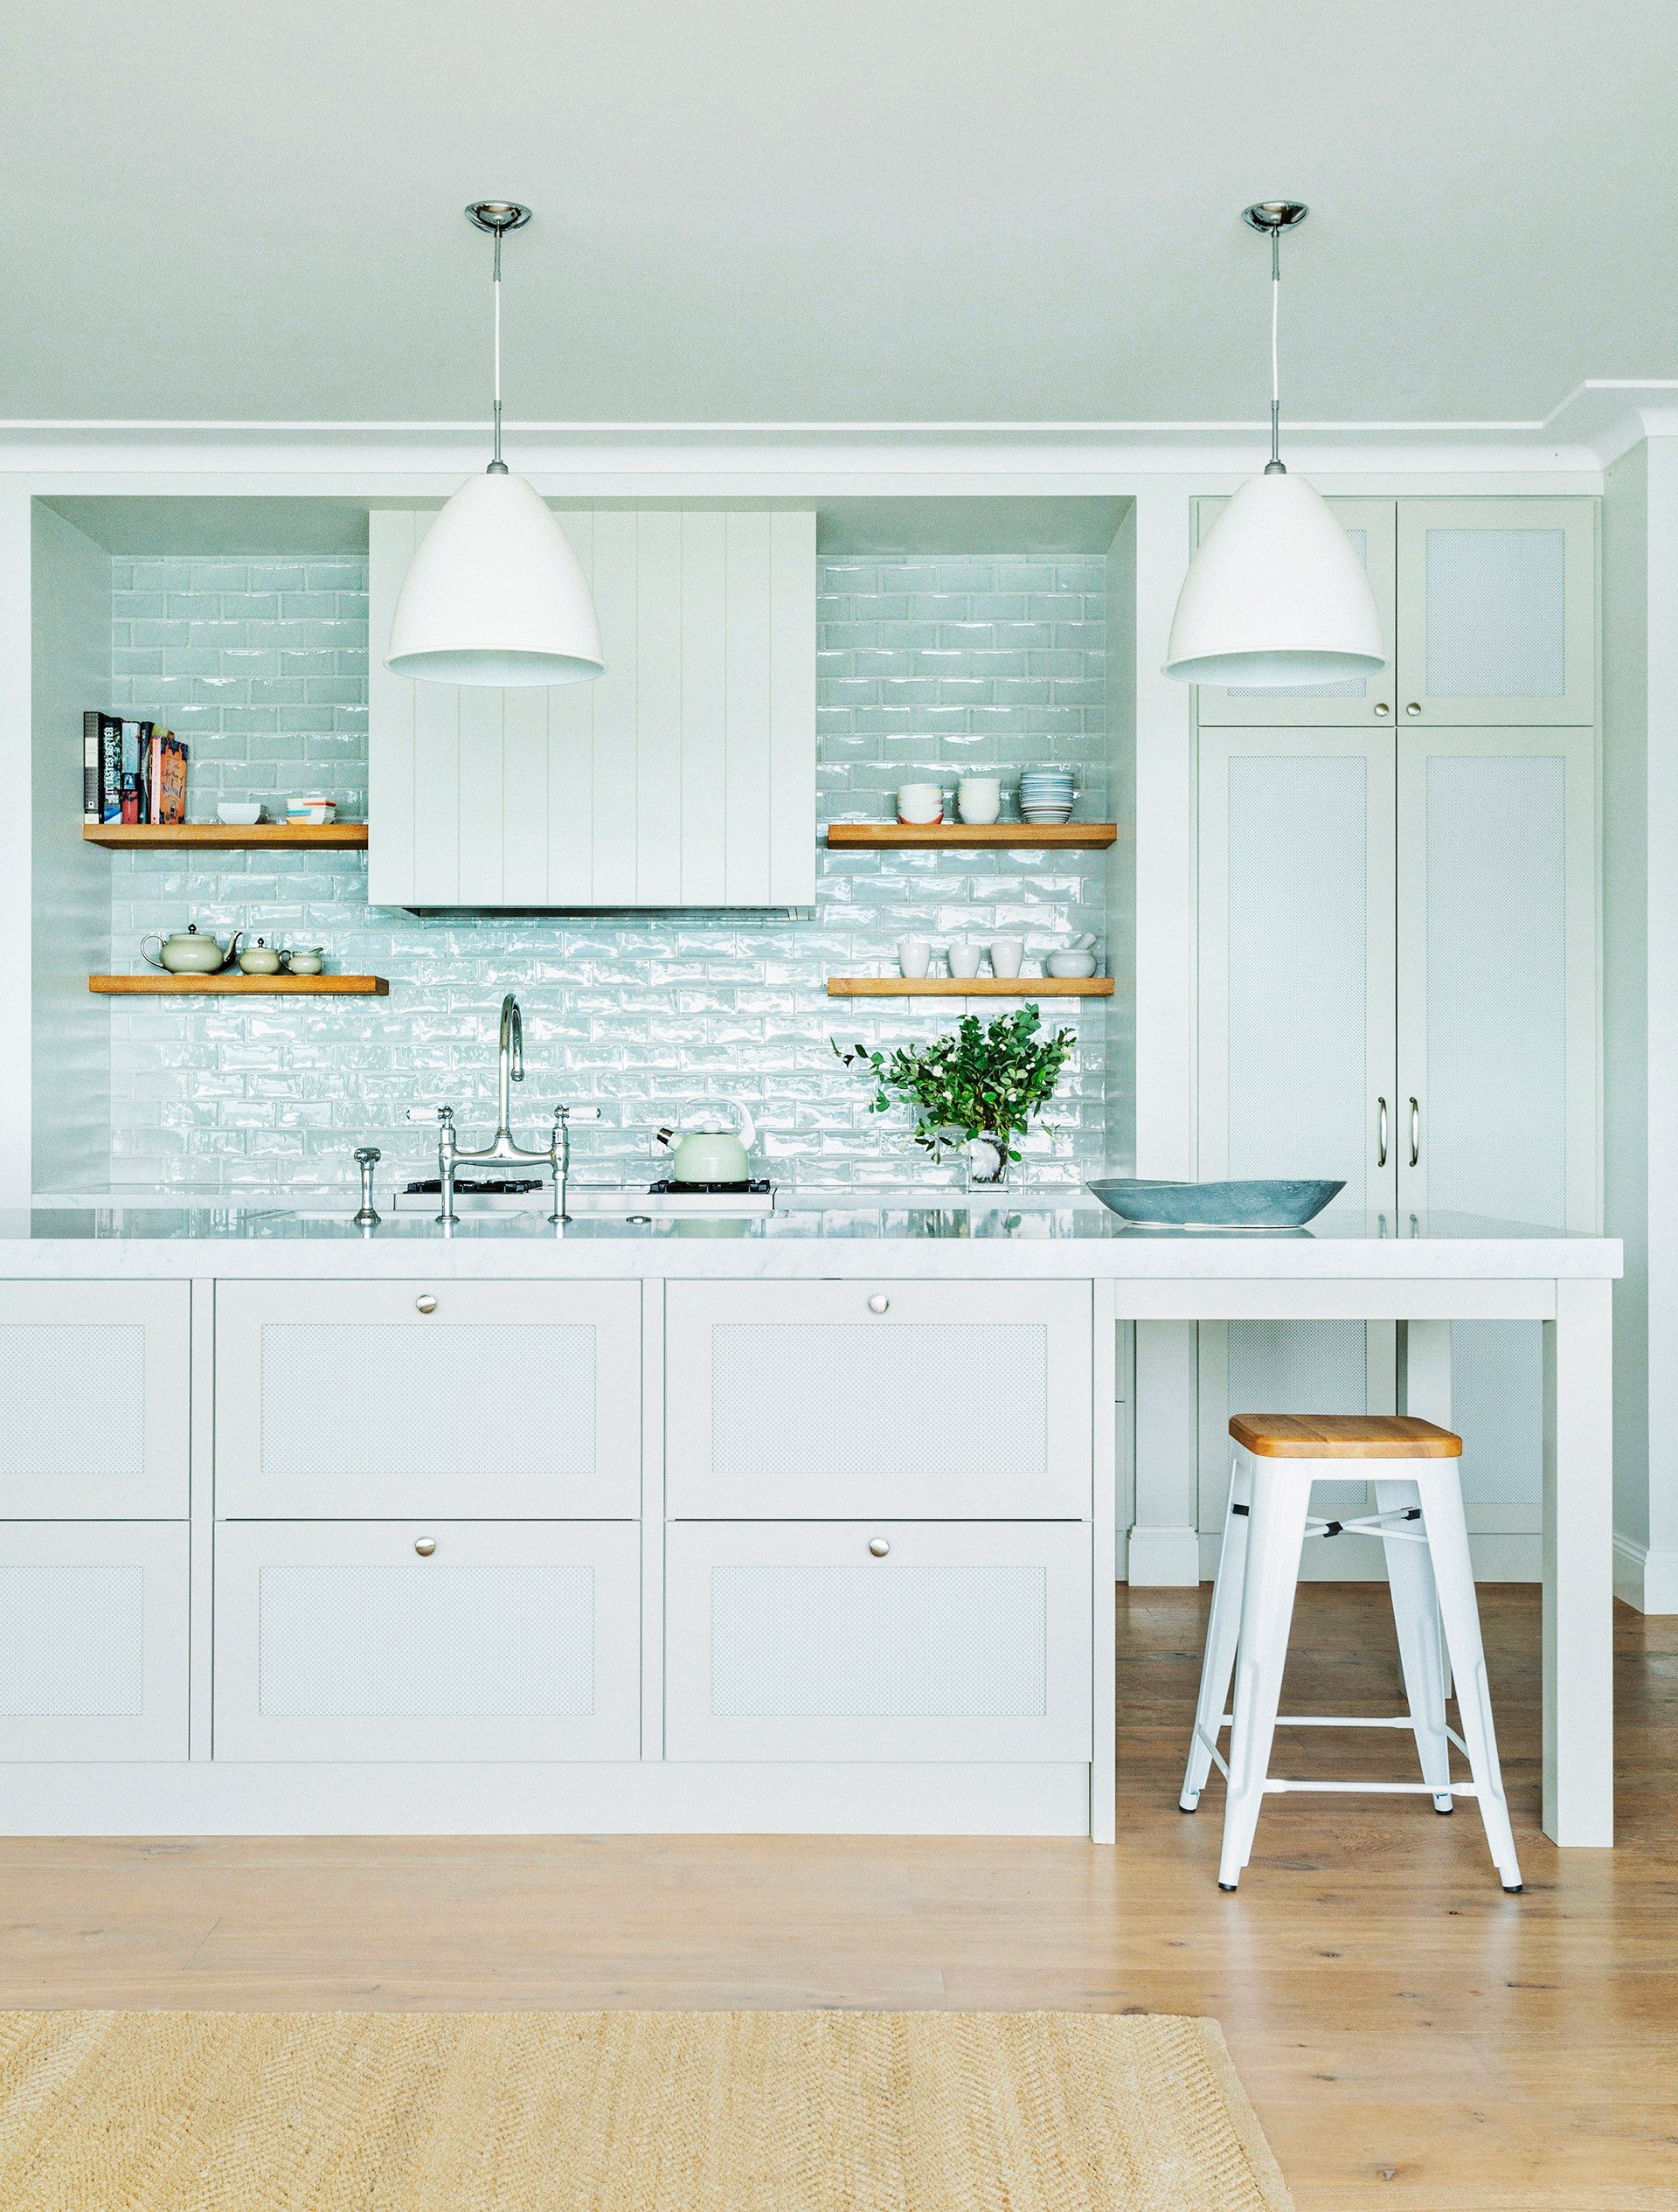 This kitchen is the creation of [Kate Bell Interior Design](http://katebelldesign.com/). We hunted down products that could fit in this fresh modern-country vibe. Shop the look!